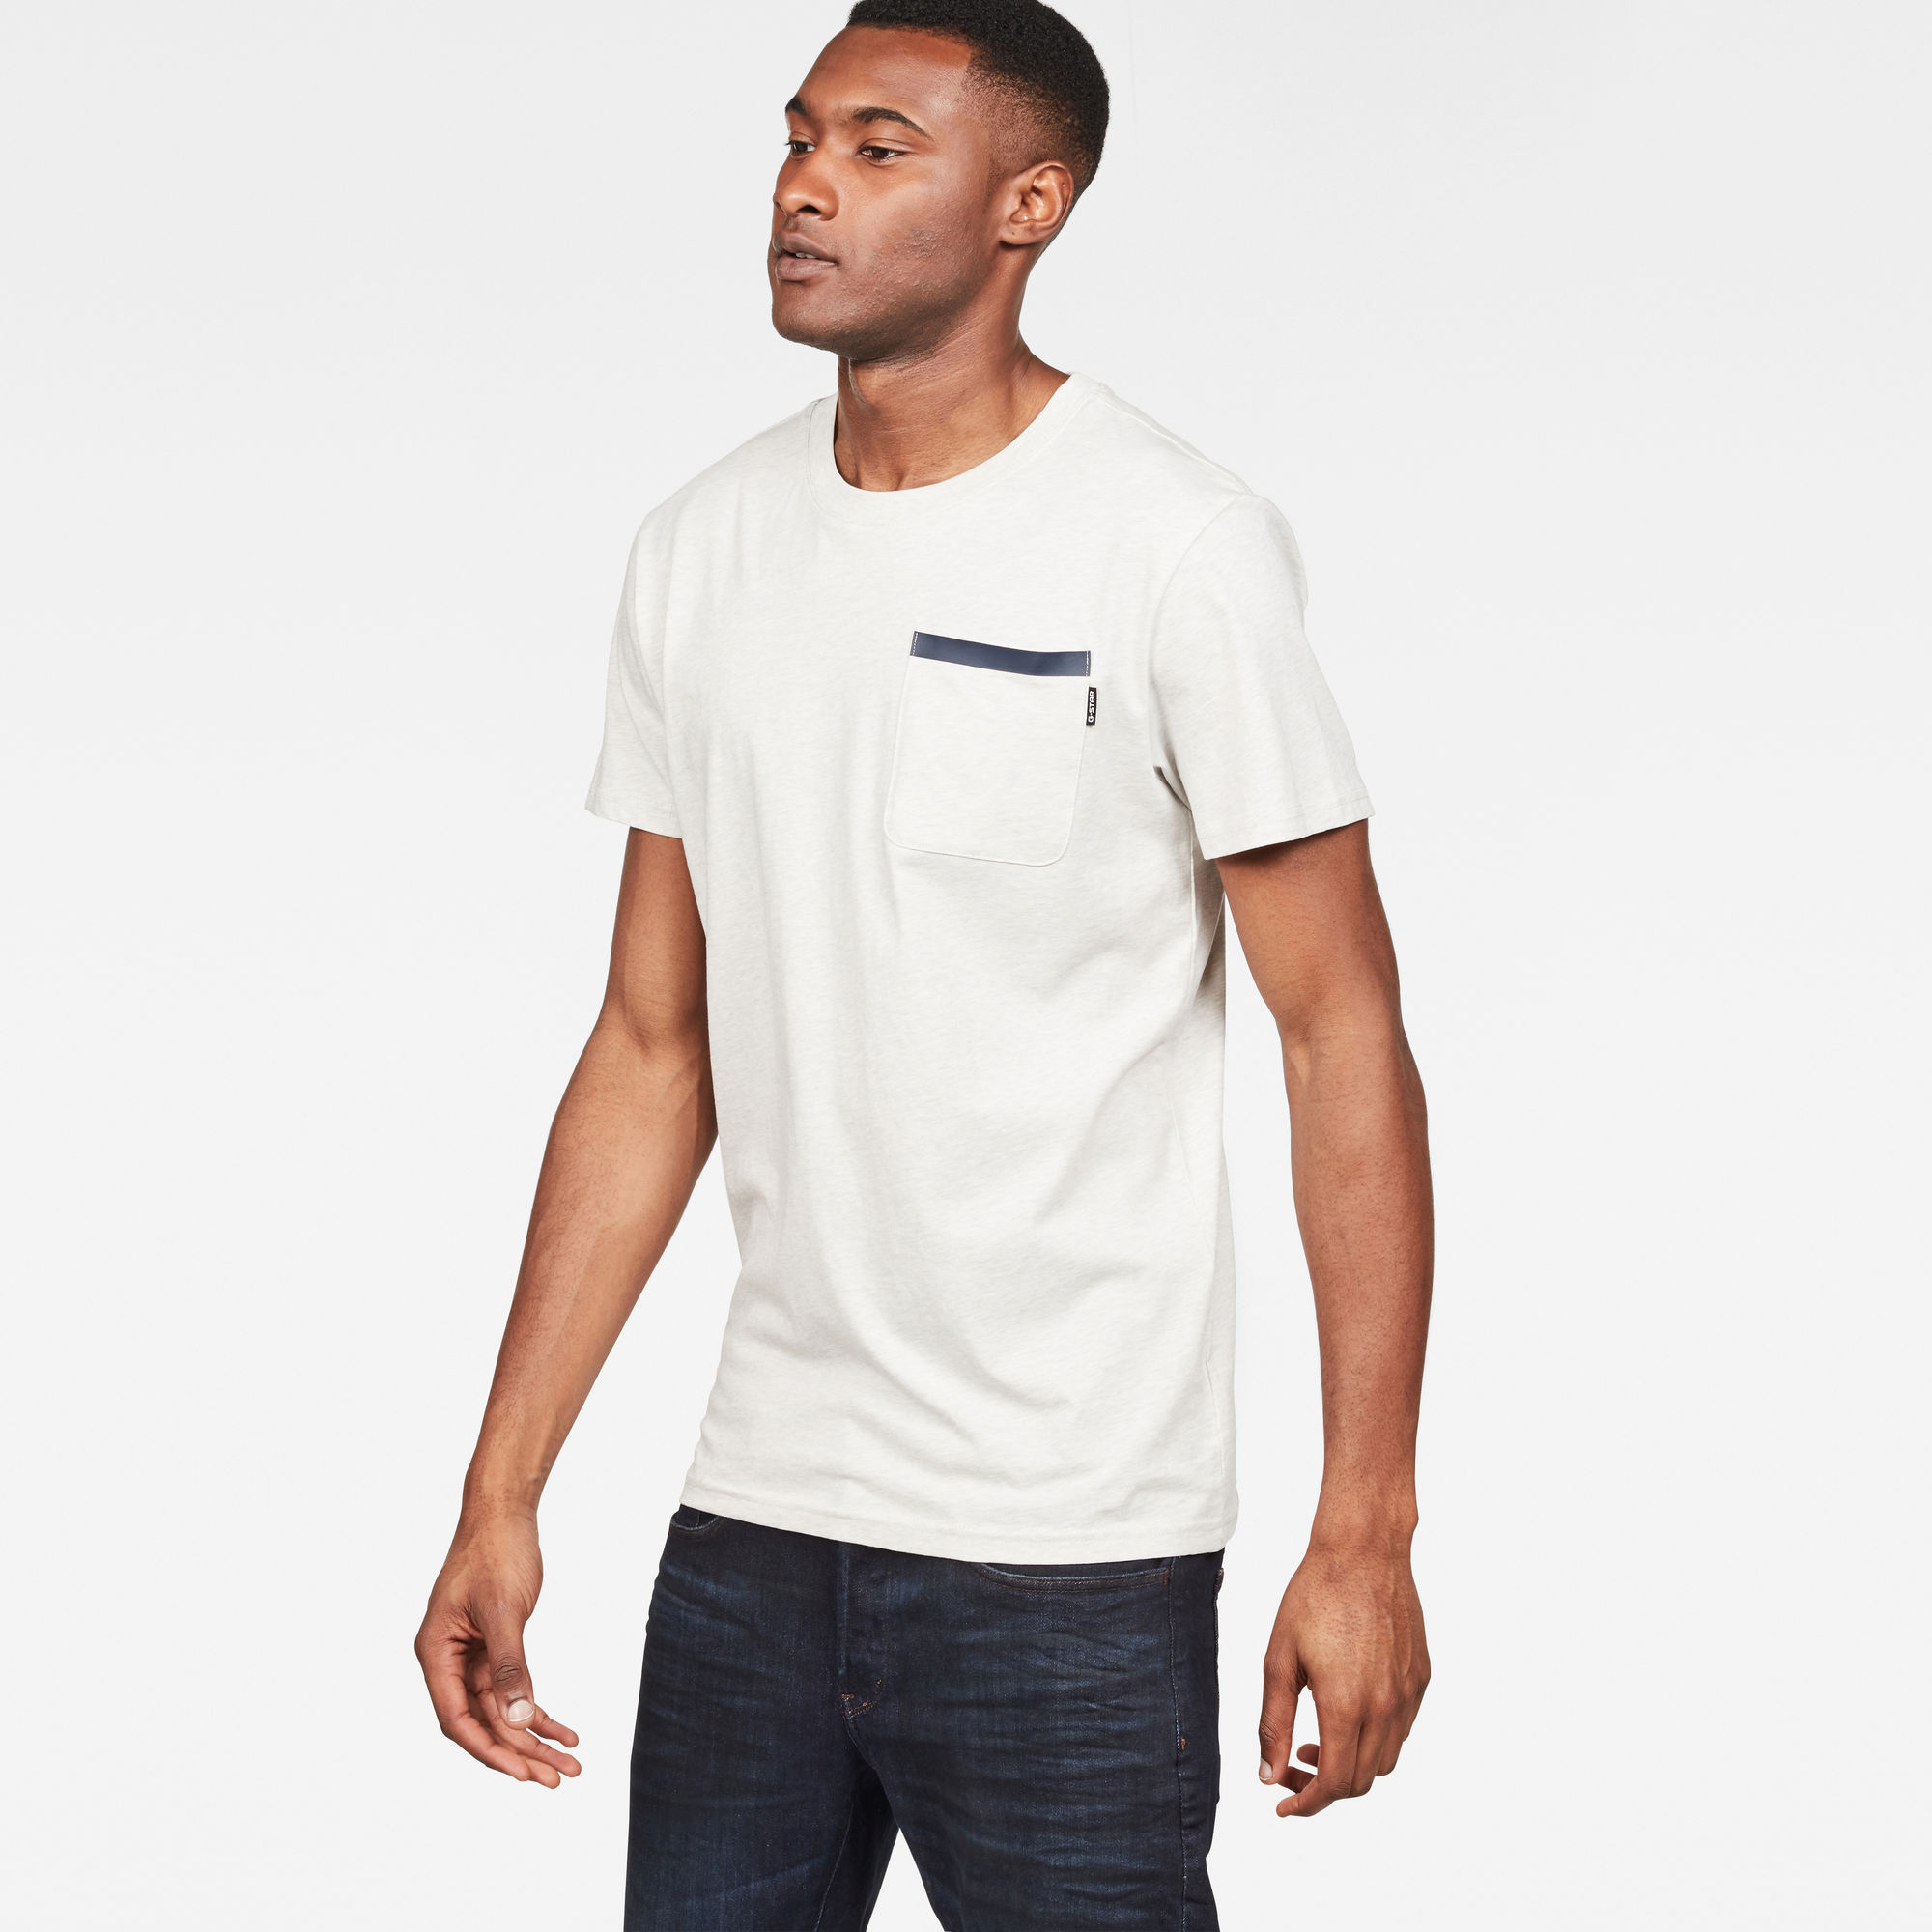 G-Star RAW Graphic 19 T-Shirt